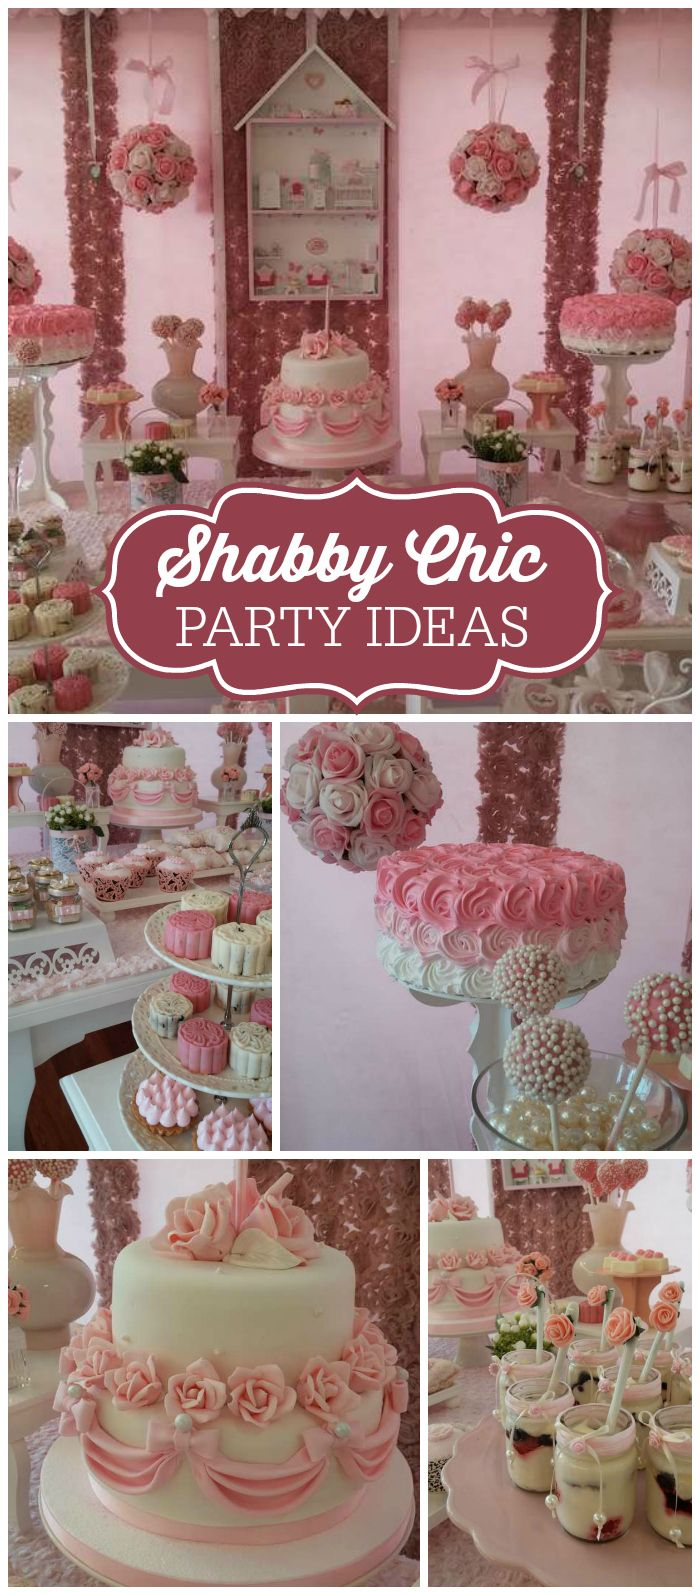 A shabby chic girl birthday party with pink and white roses for decorations and the cake! See more party planning ideas at CatchMyParty.com!